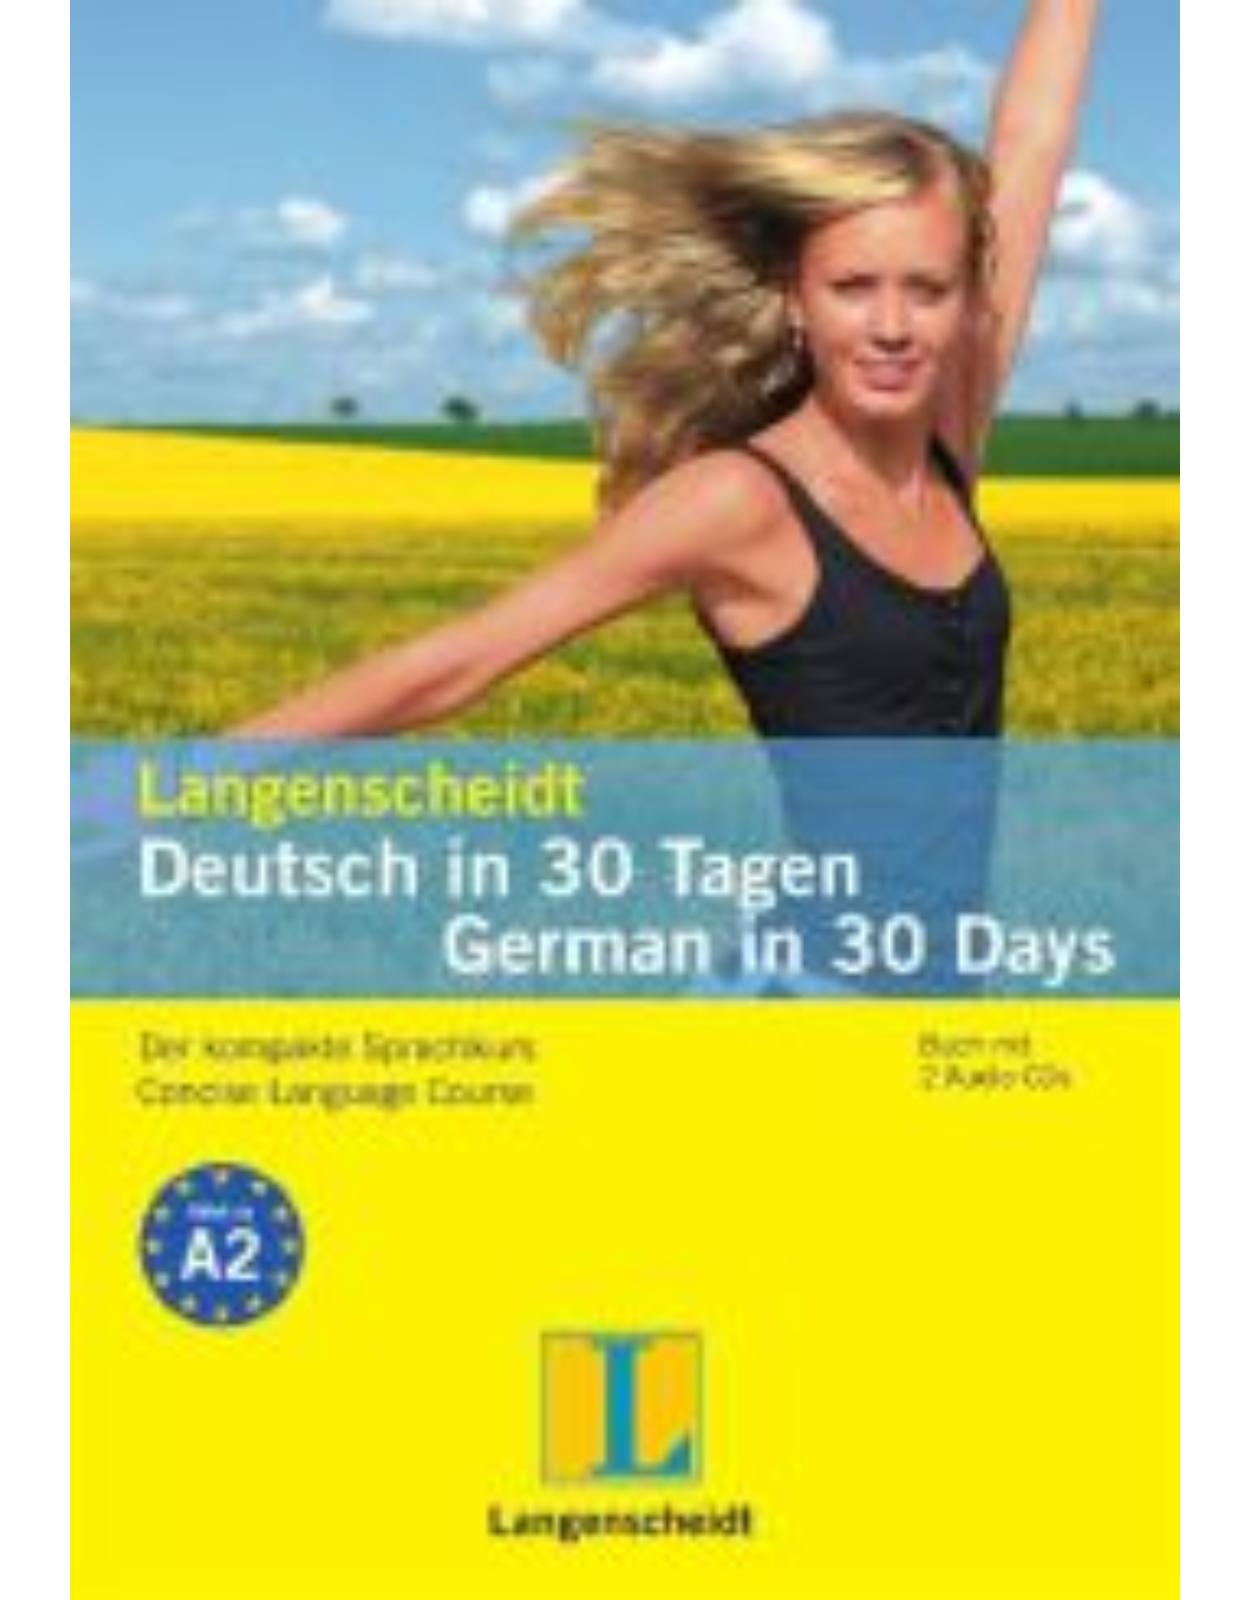 Langenscheidt Deutsch in 30 Tagen - German in 30 Days, m. 2 Audio-CDs.